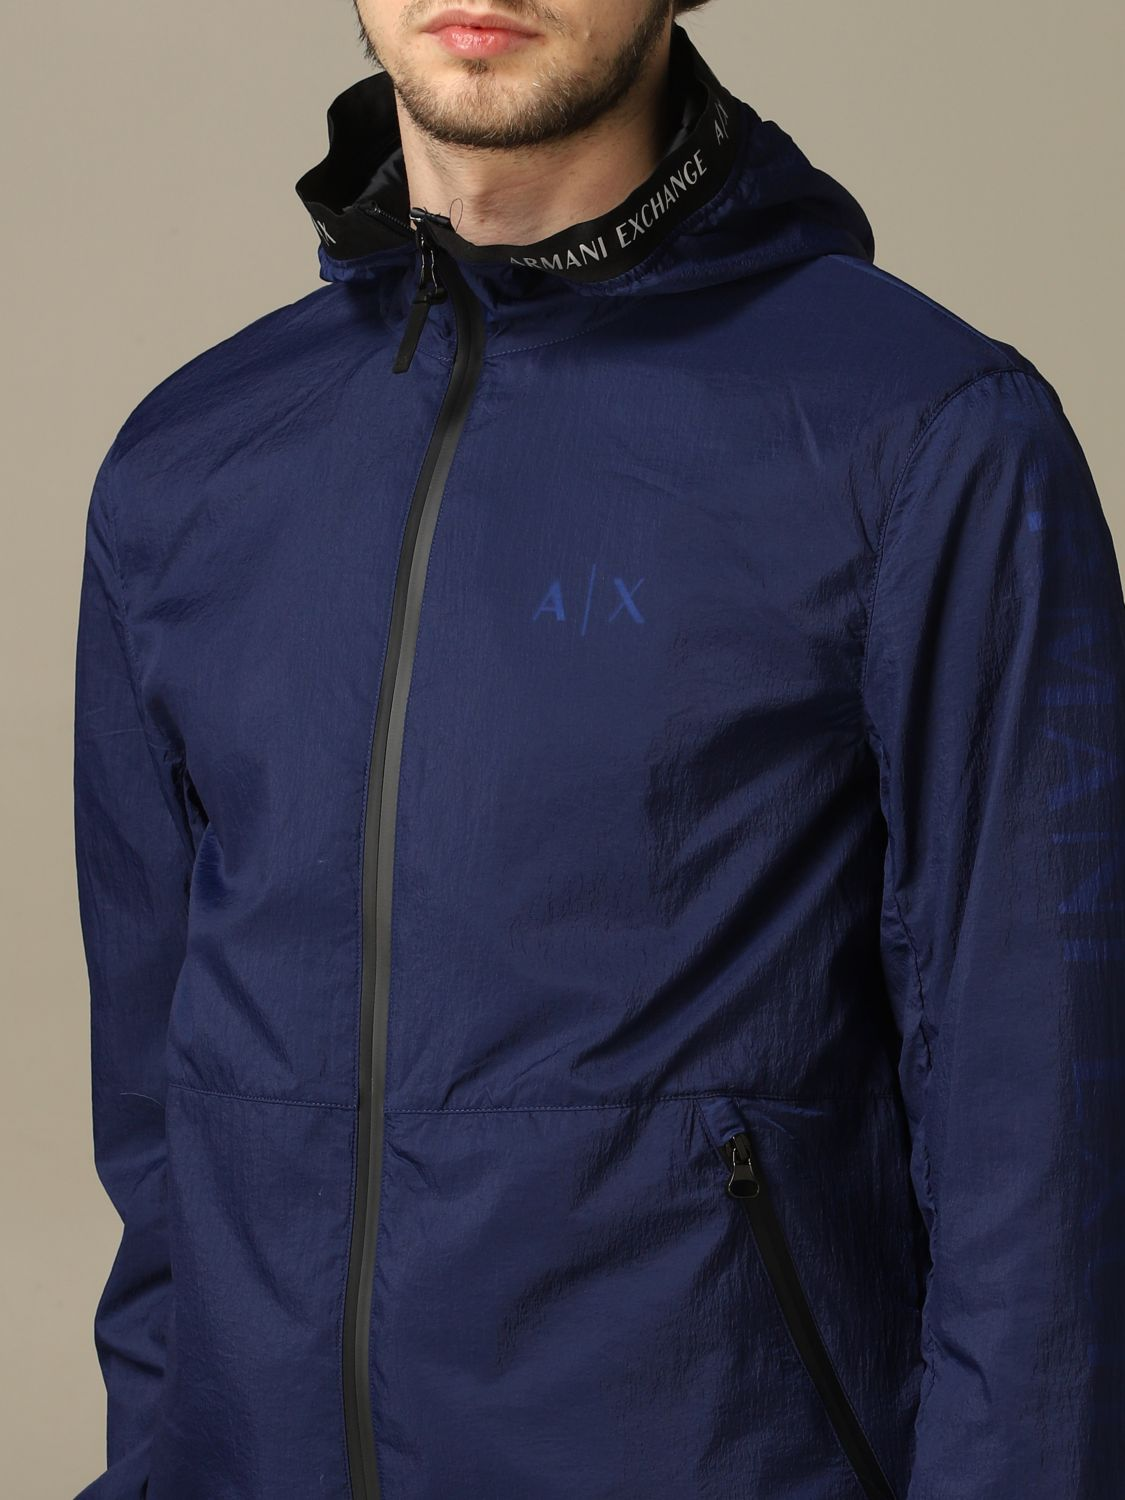 Giacca sportiva Armani Exchange con big logo blue 3